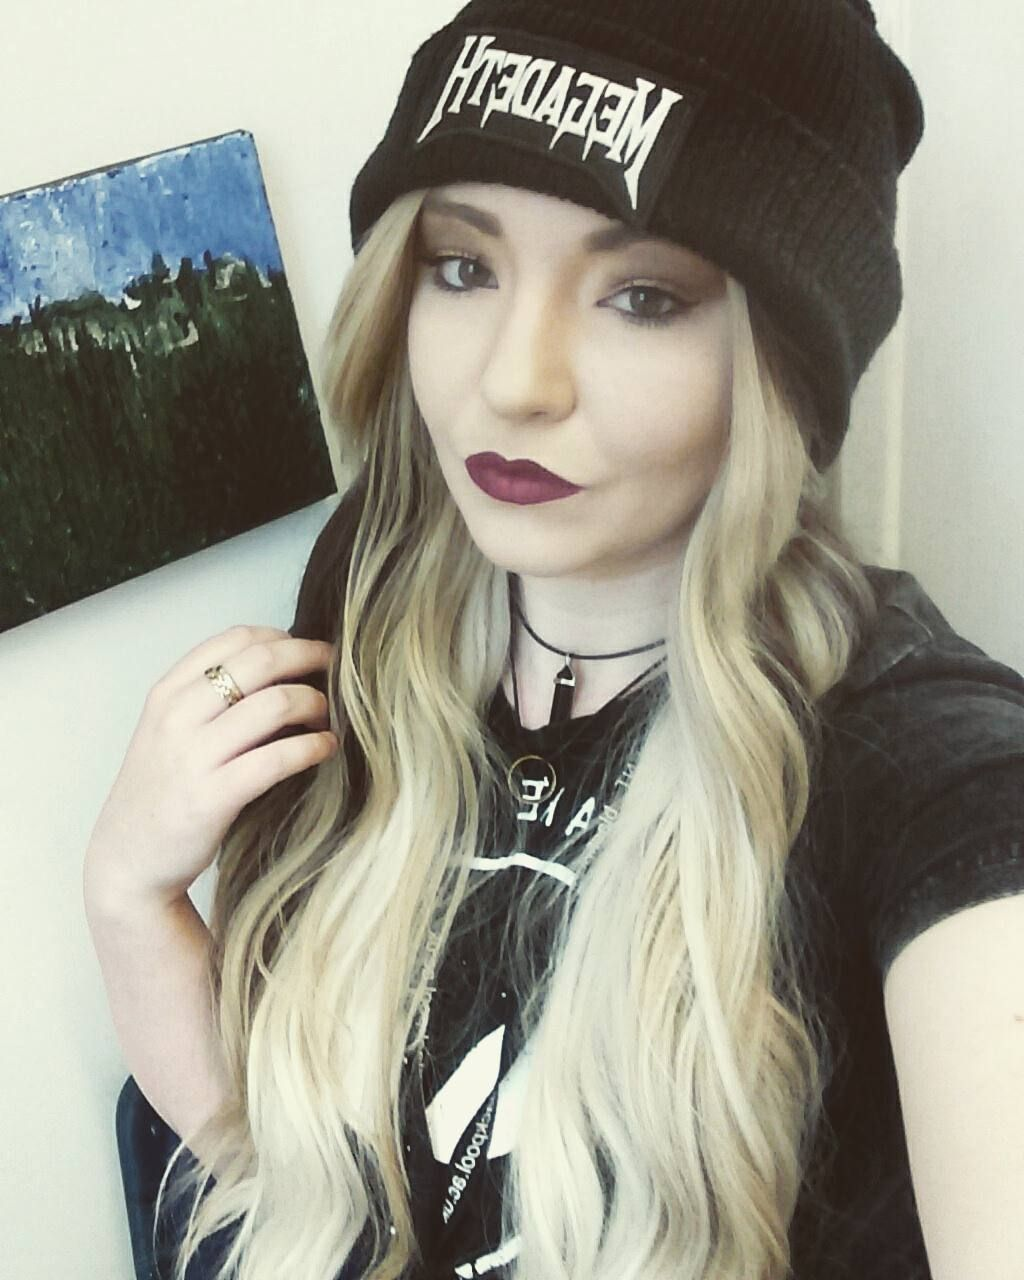 Another day at uni today. I'm soooo behide but next week is the hoildays. So hopefully I'll be able to catch up.... Hopefully #selfie #portrait #blondehair #mixedhair #toffee #lushwigs #lushwigstoffeelatte #lipstick #purplelipstick #megadeath #beanie #choker #alternativegirl #alternative #metalghead by charlottealicecollier